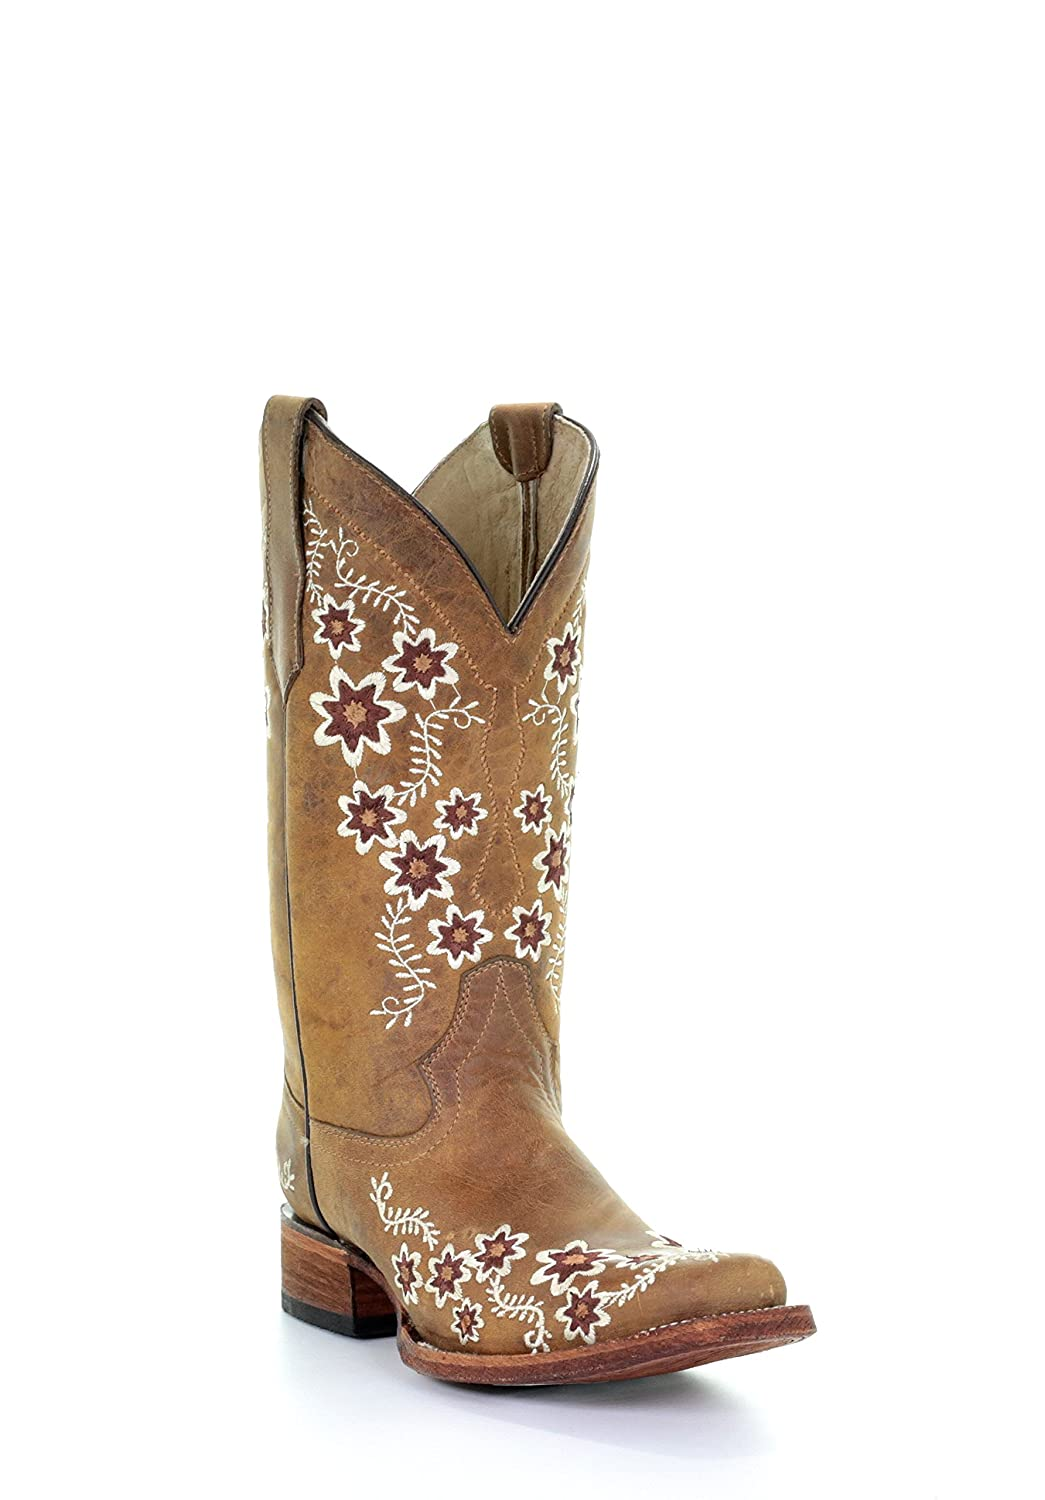 6bc1e3b295a Corral Circle G Women's Floral Embroidery Square Toe Leather Cowgirl Boots  - Tan